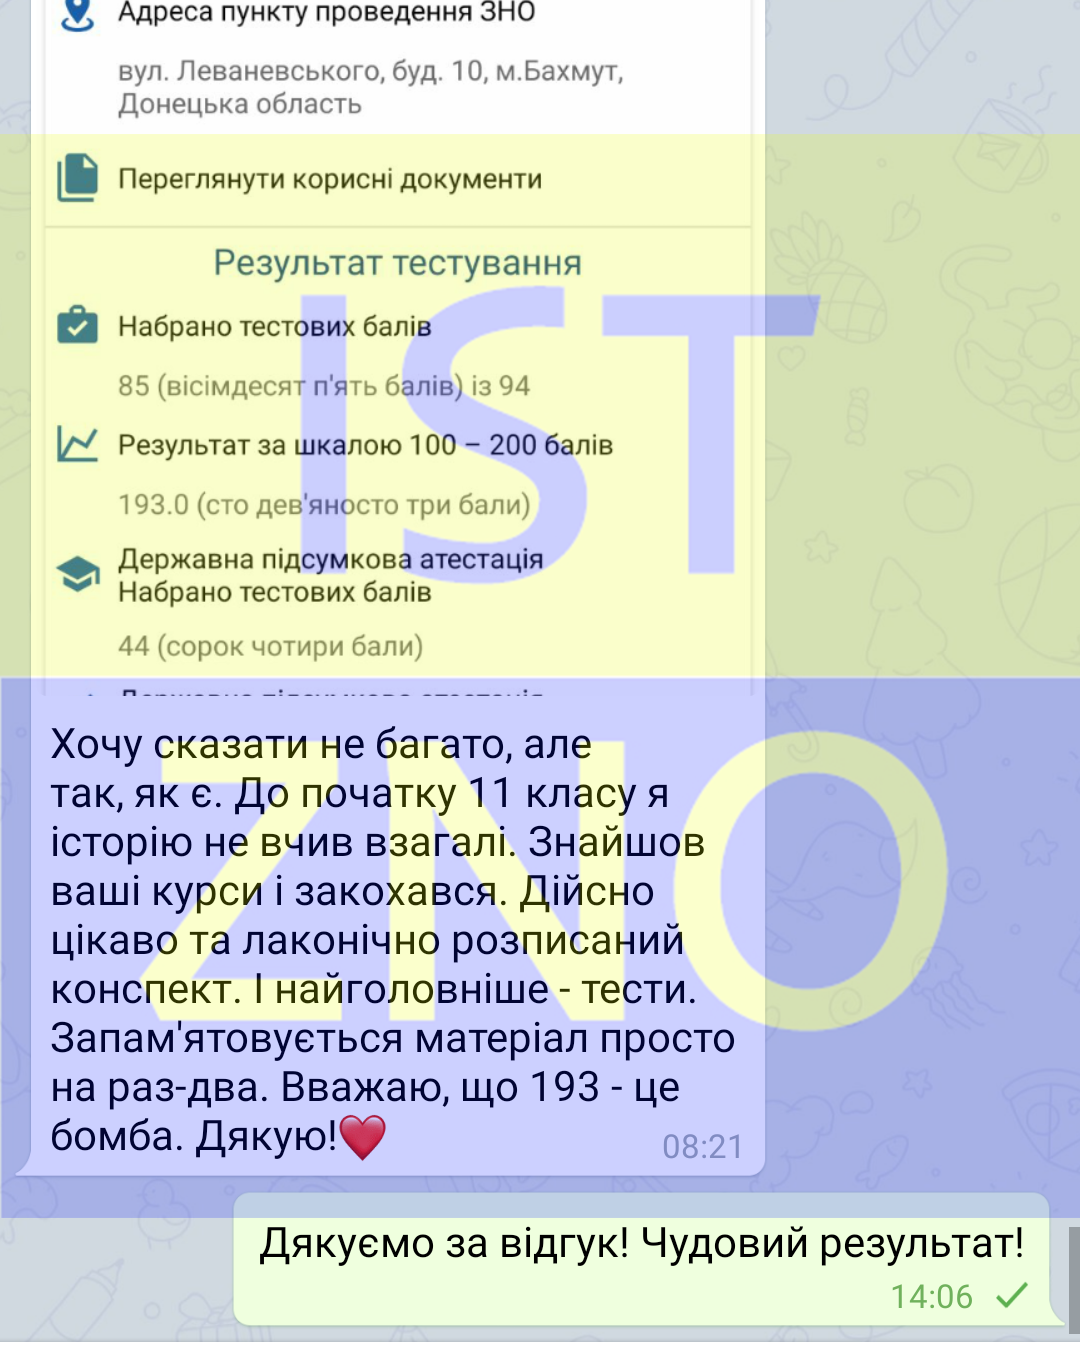 Screenshot_2019-06-22-14-06-38-103_org.telegram.messenger